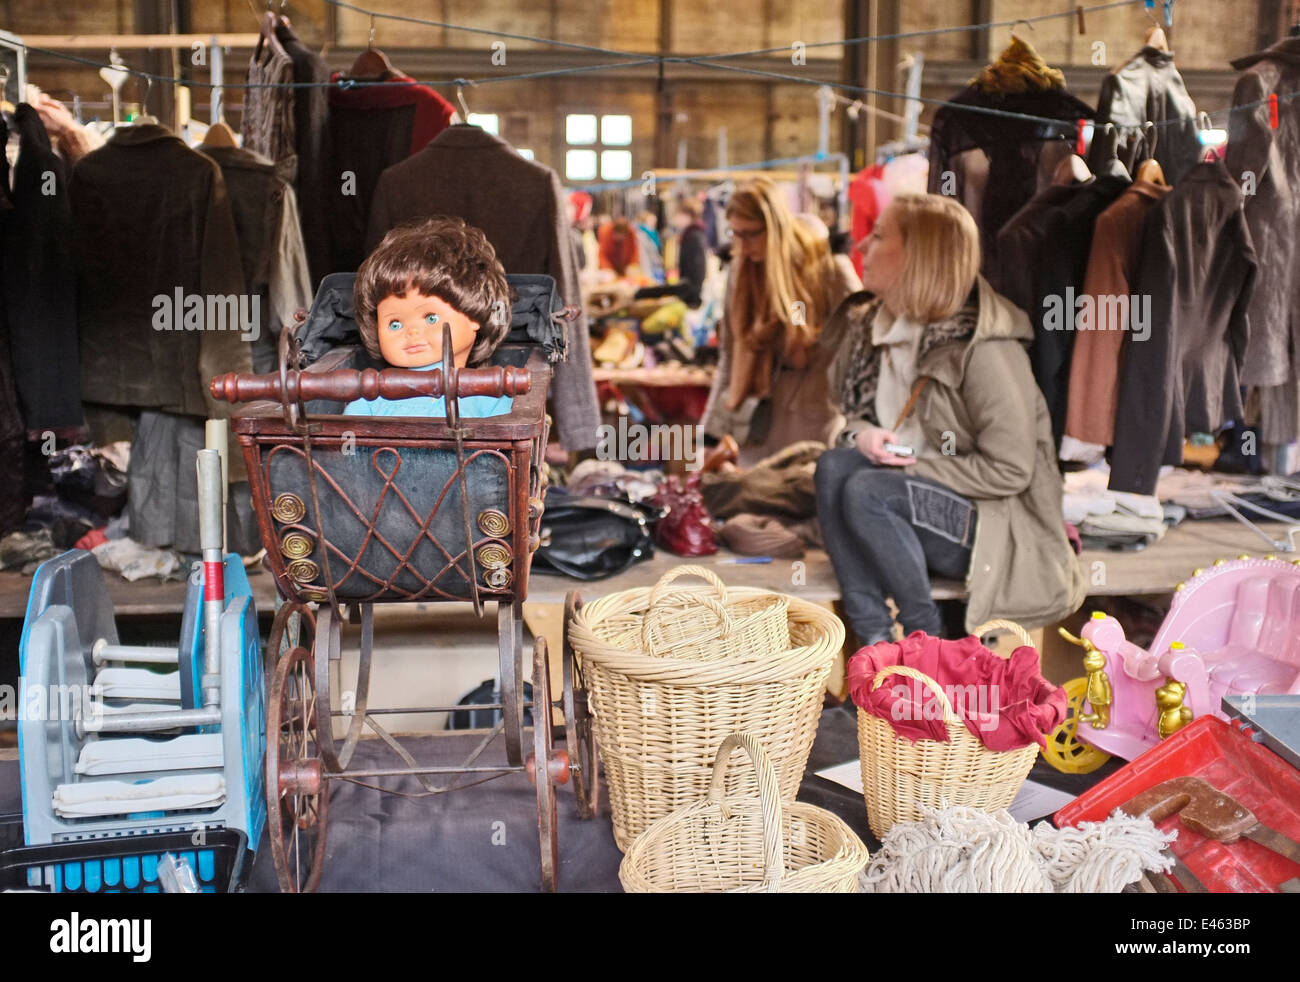 FLEA MARKET NDSM WERF, NORTH AMSTERDAM, NETHERLANDS, HOLLAND - Stock Image